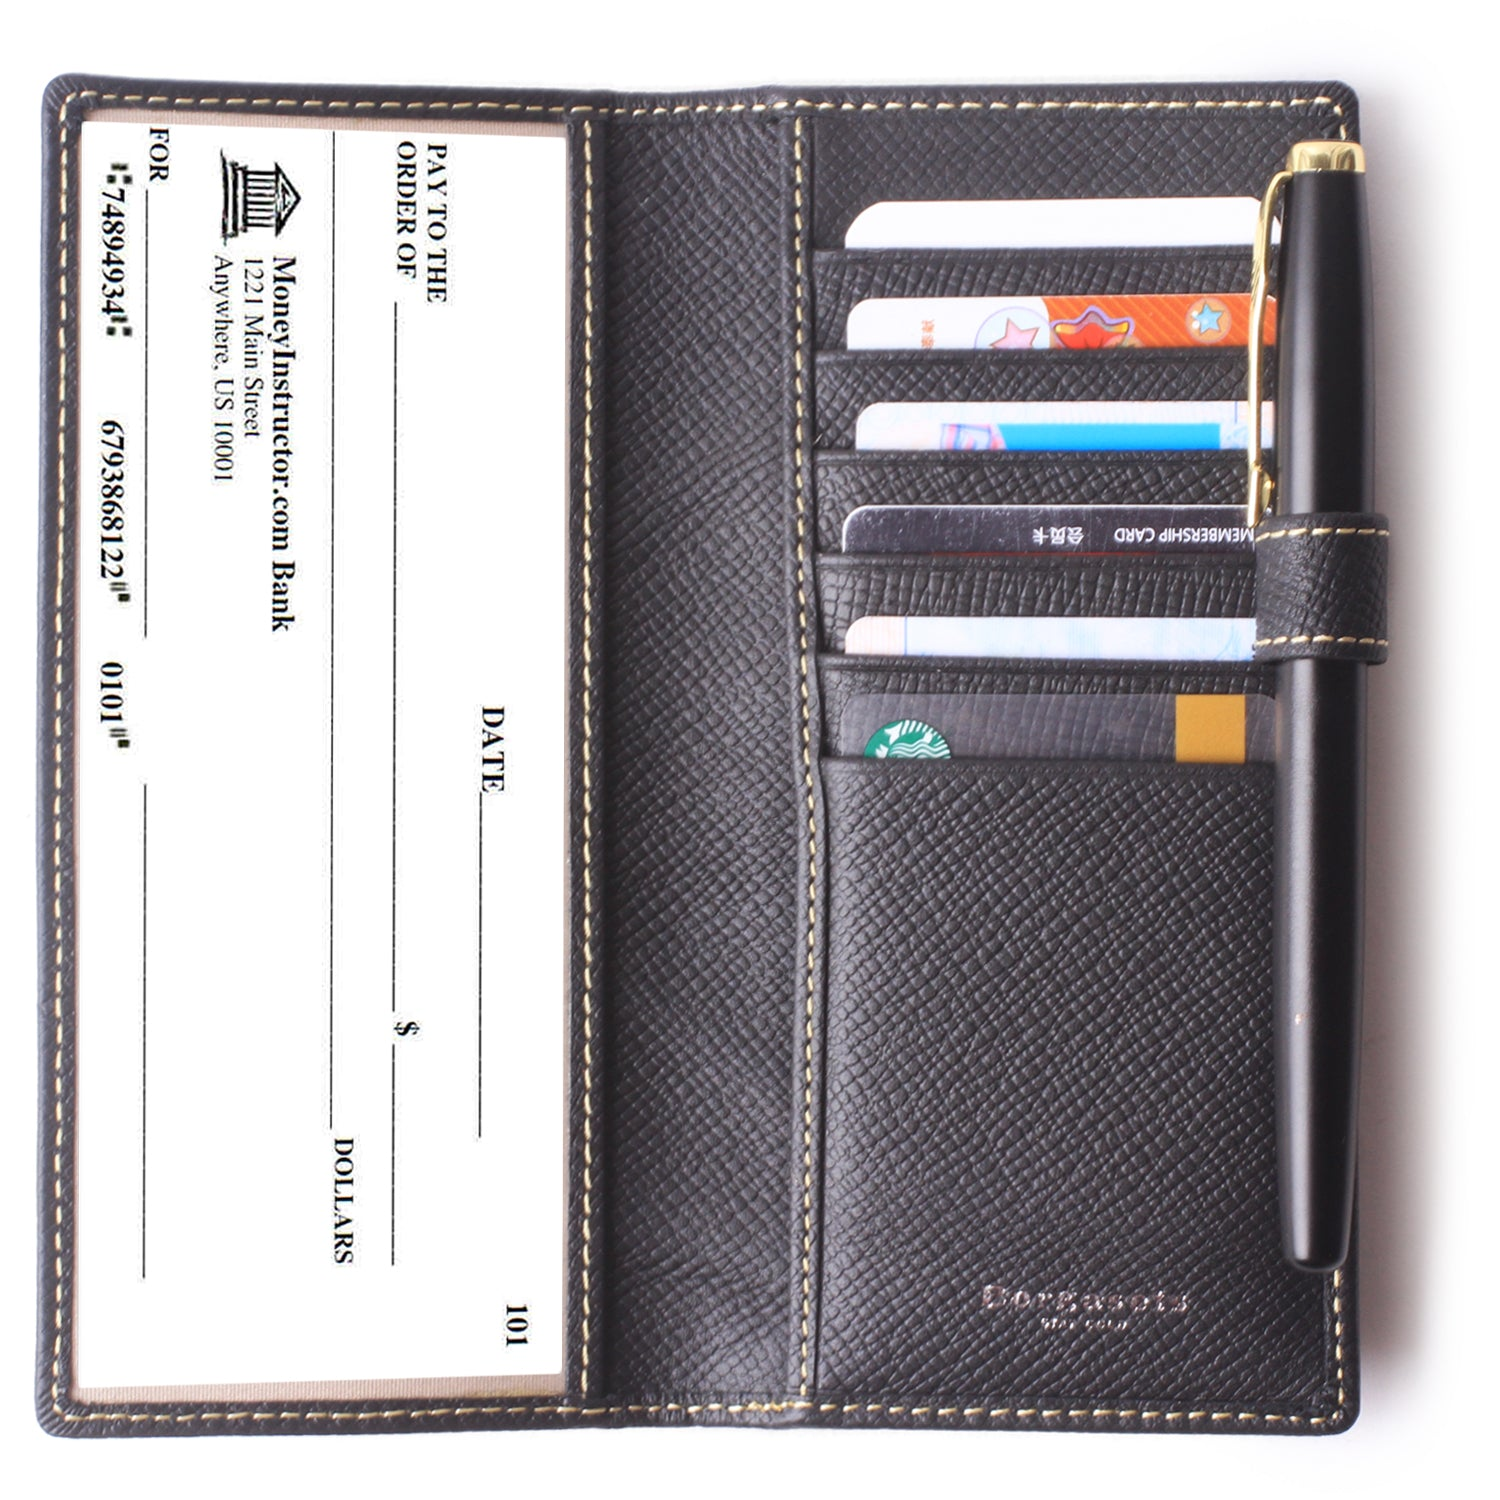 Leather Checkbook Cover For Men Women Checkbook Covers with Card Holder Wallet Black - Borgasets